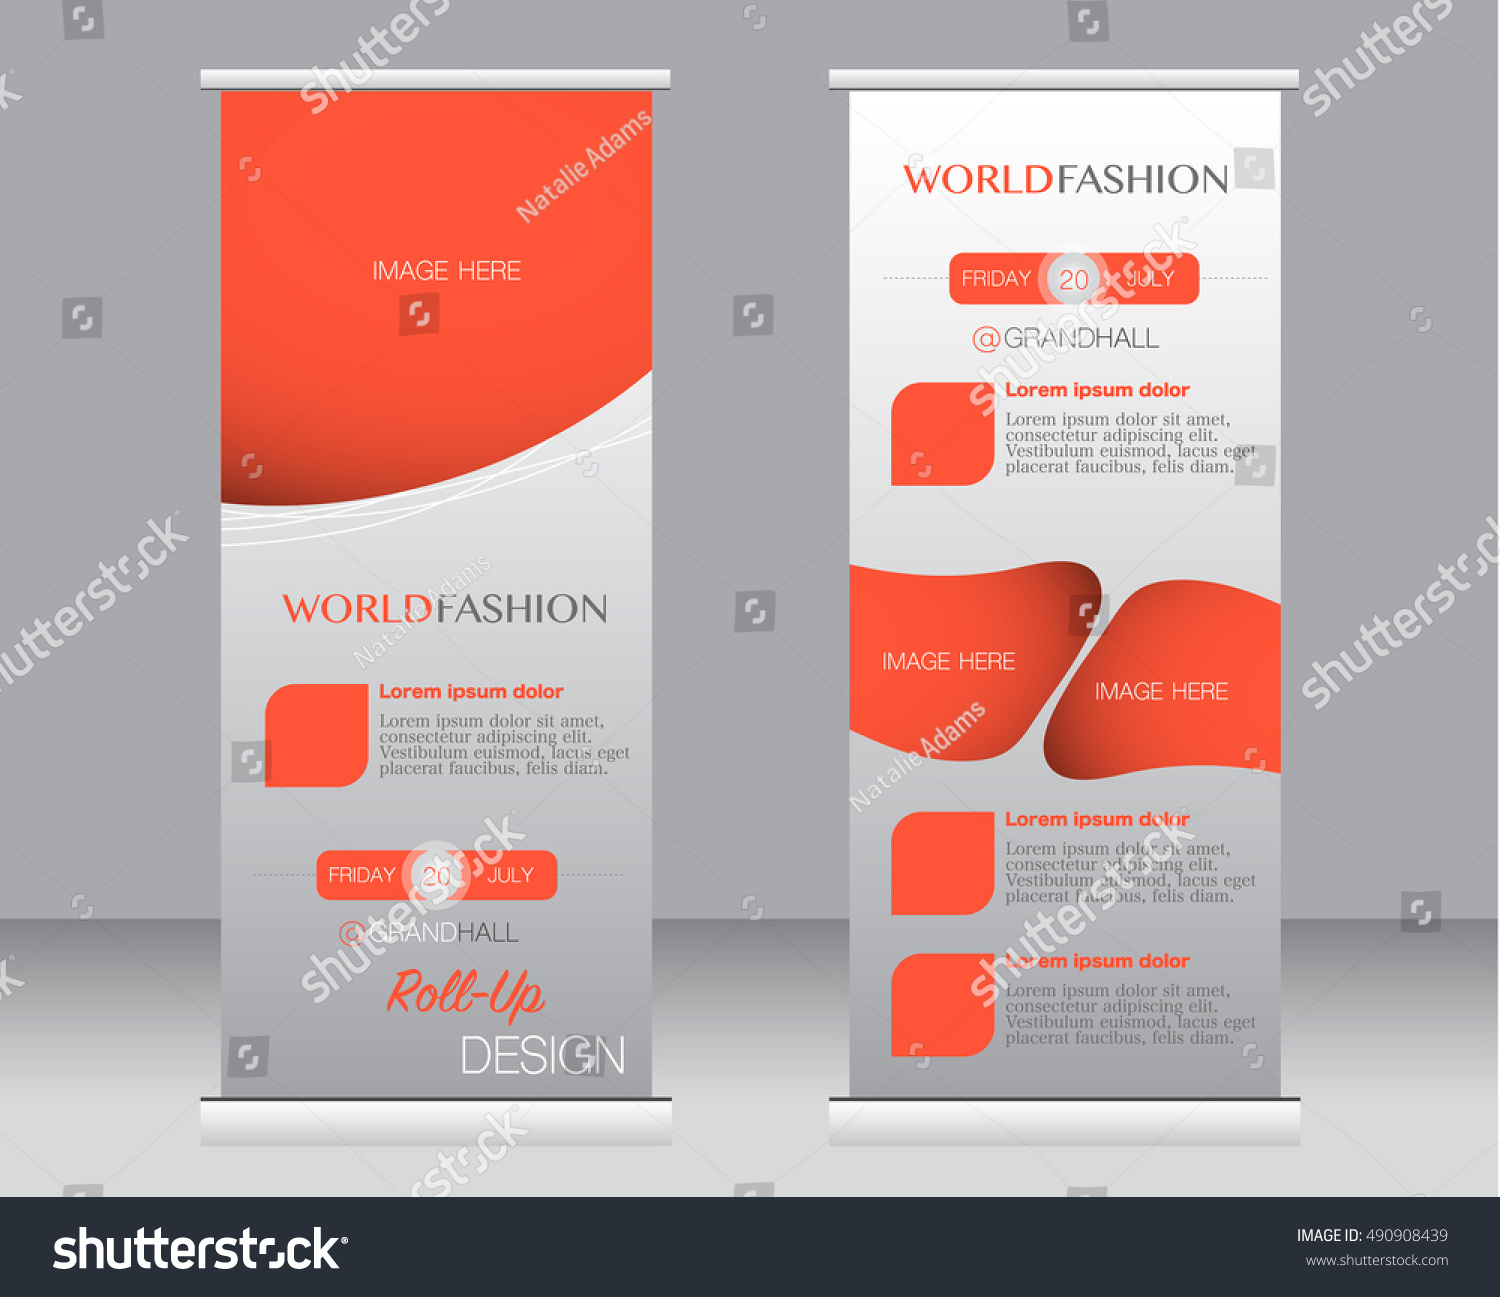 roll banner stand template abstract background stock vector roll up banner stand template abstract background for design business education advertisement